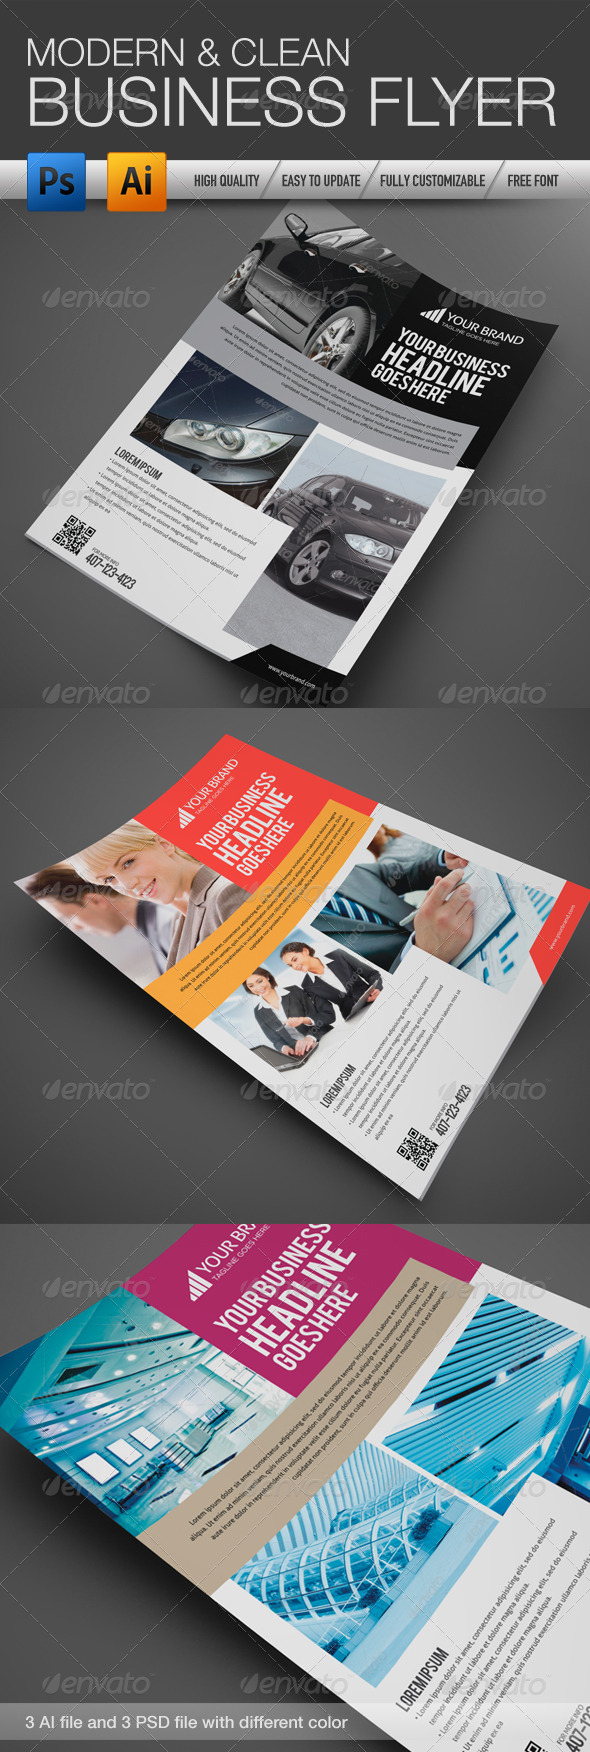 Professional and Clean Business flyer 3 - Corporate Flyers